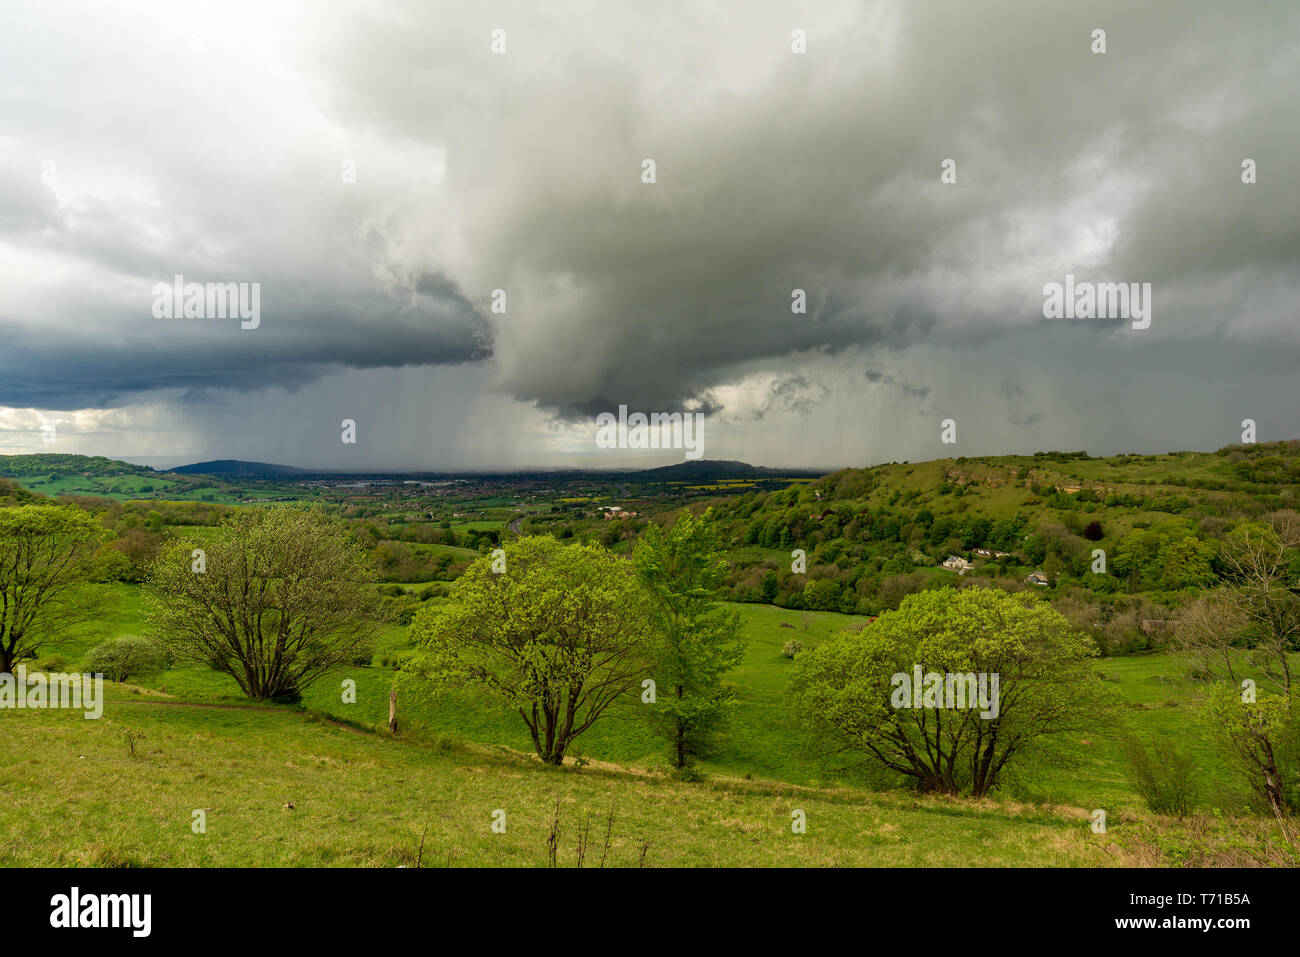 Dark cumulonimbus thunderstorm clouds over Gloucestershire countryside seen from high viewpoint at Birdlip on the edge of the Cotswolds escarpment, UK - Stock Image